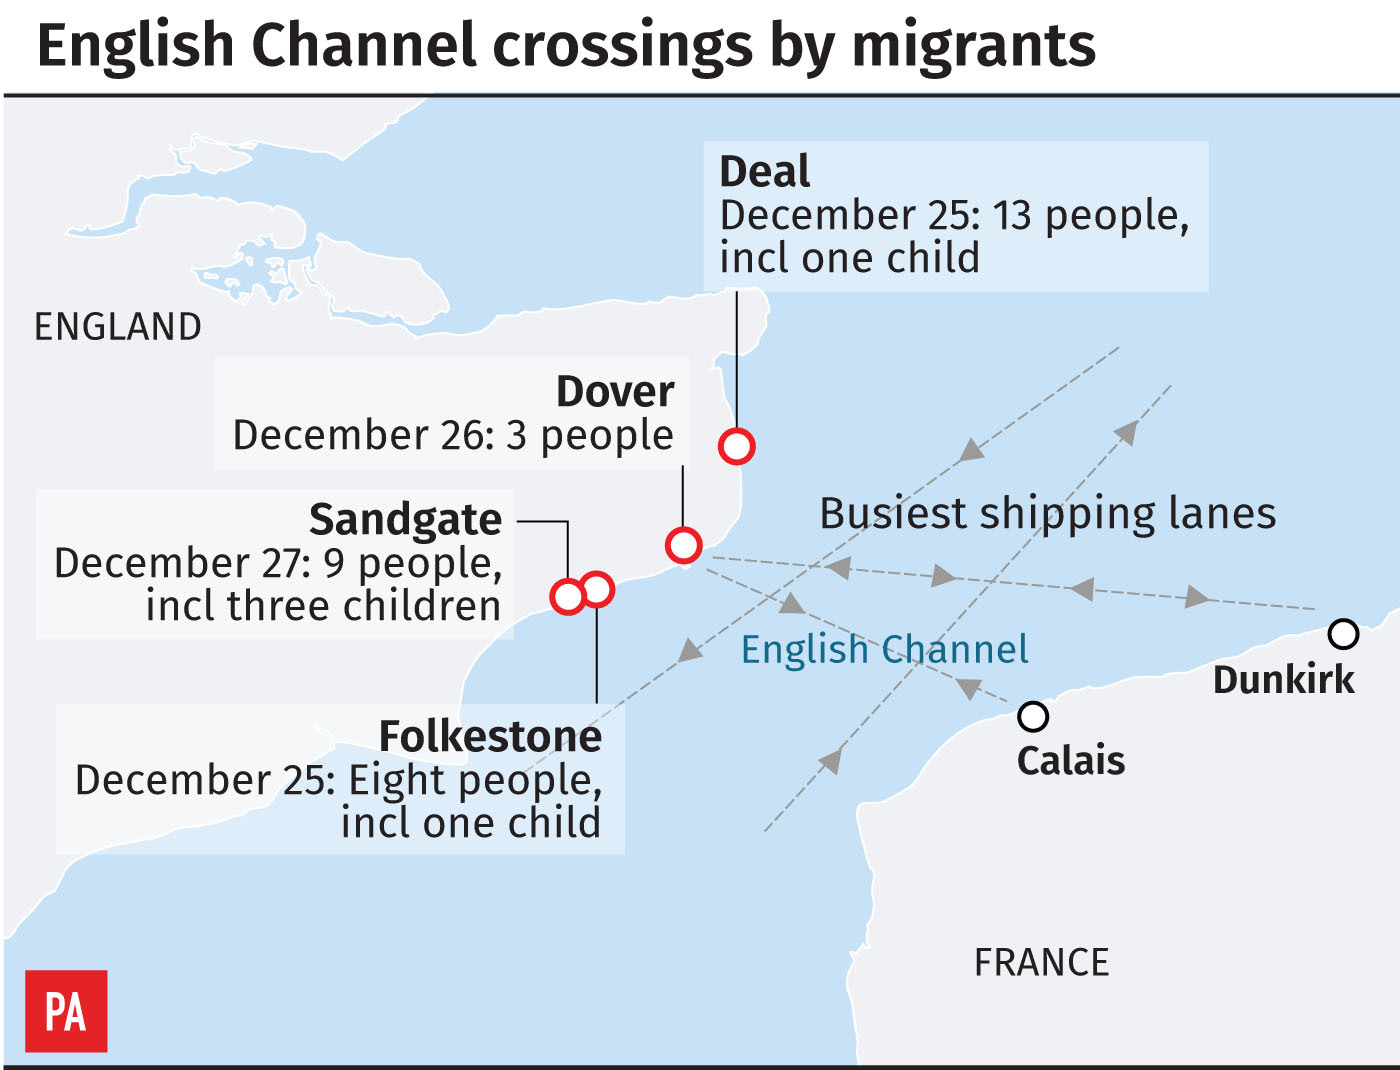 'Deeply concerning': Why the rise in migrants crossing the English Channel?